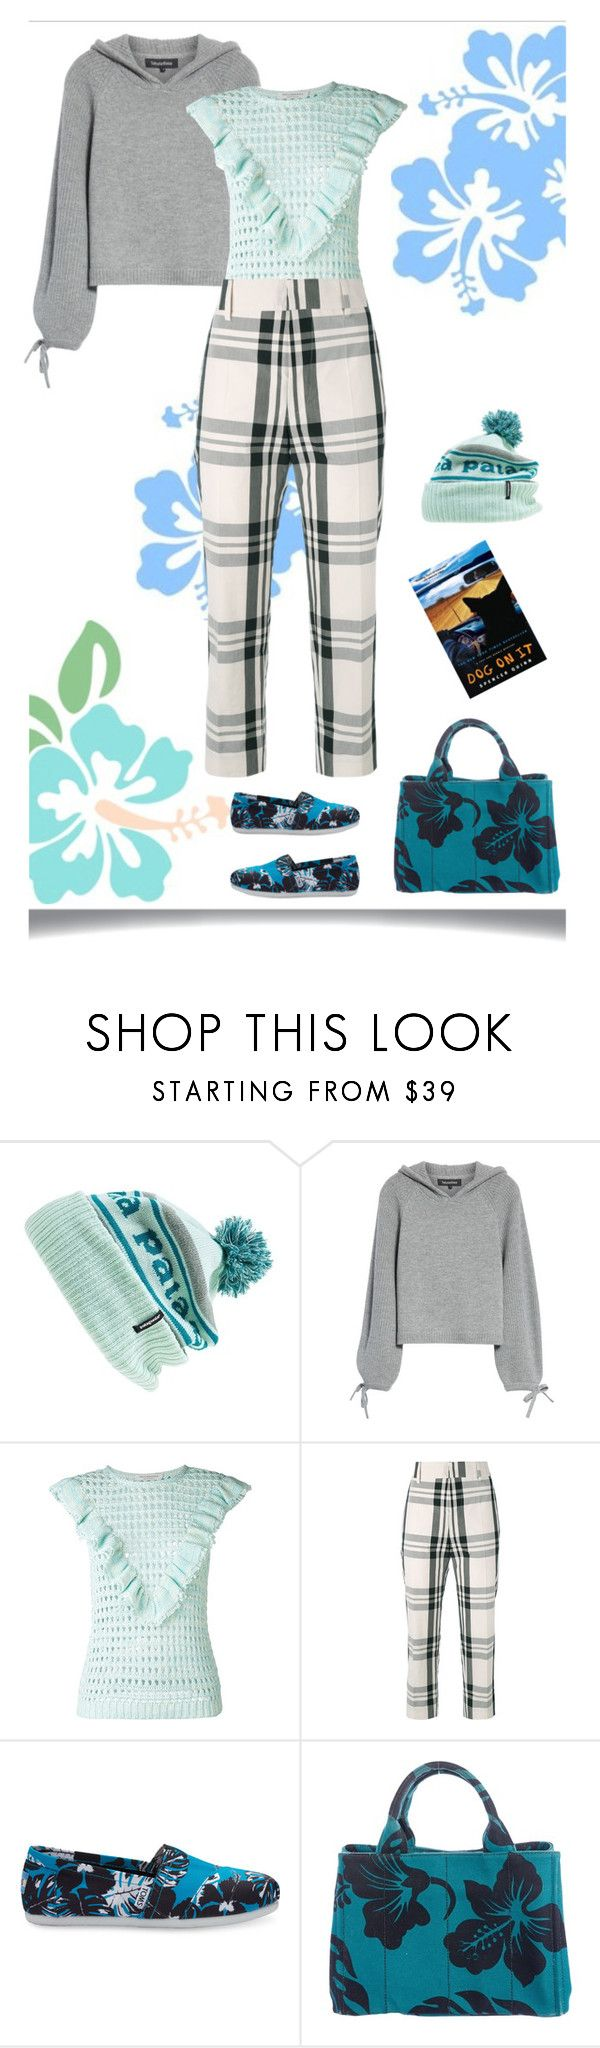 """Oh Chet"" by feileastram ❤ liked on Polyvore featuring Patagonia, Tabula Rasa, Philosophy di Lorenzo Serafini, Sofie D'hoore, TOMS and Prada"